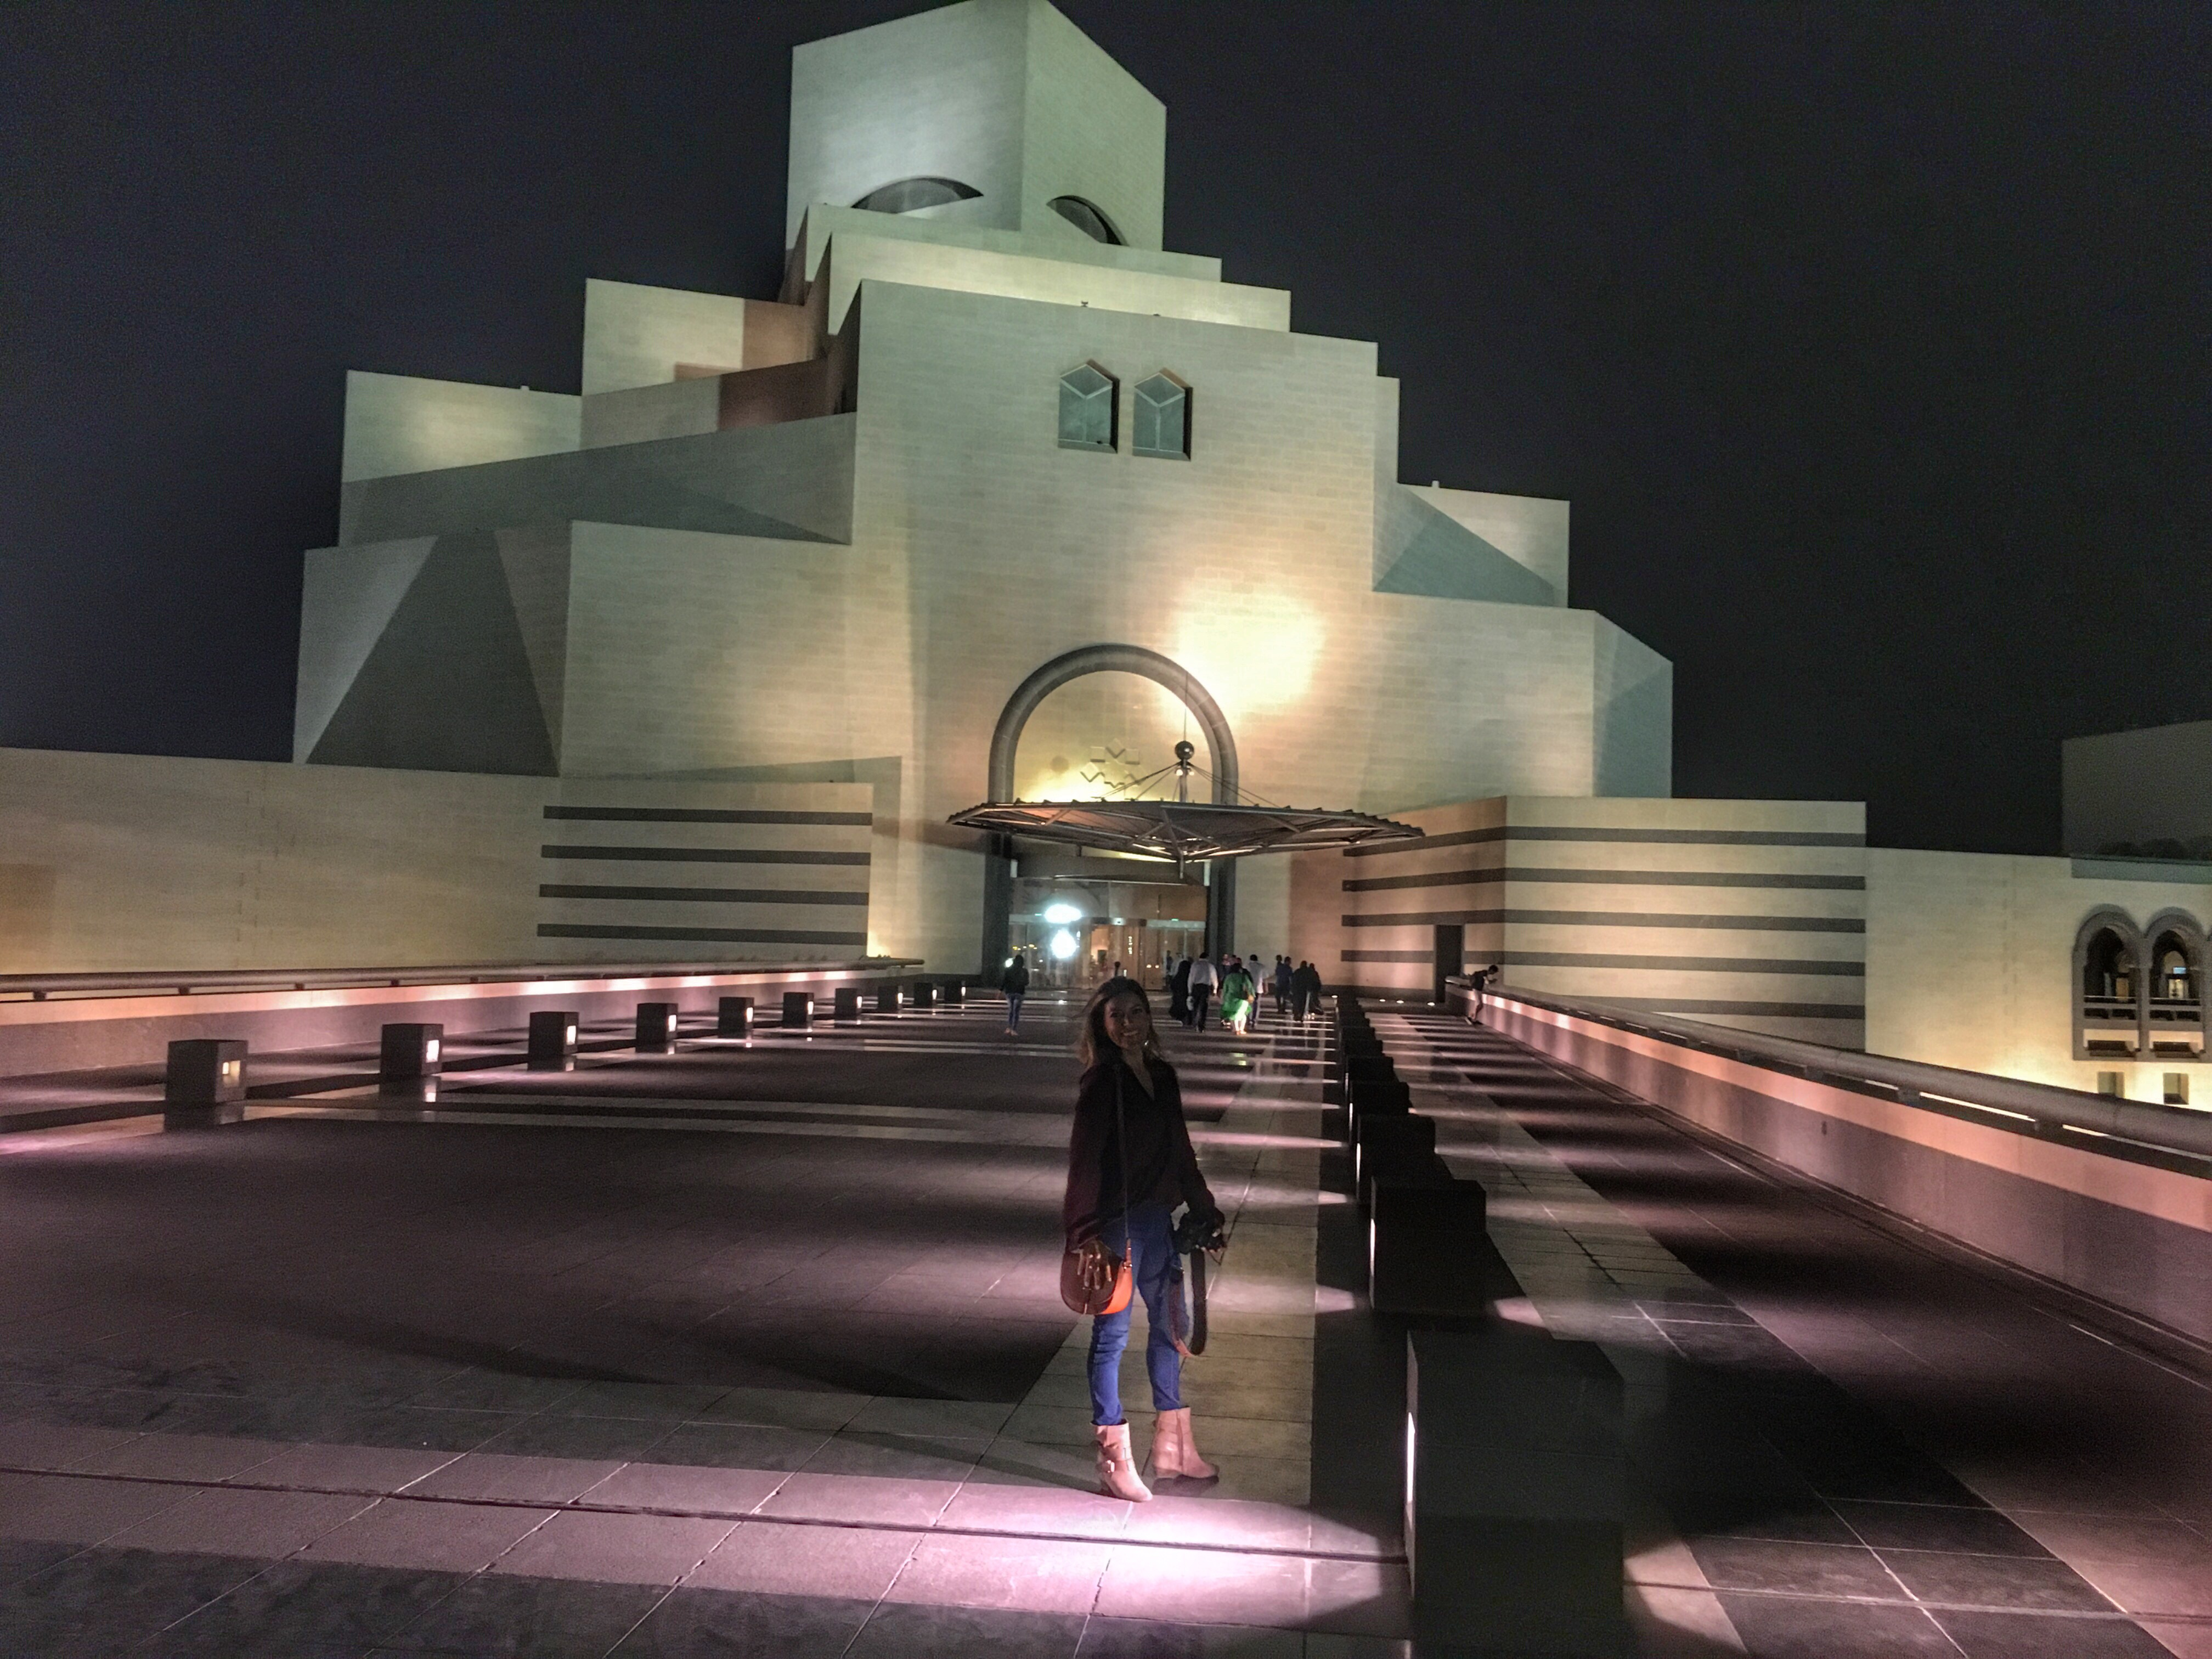 Museum of Modern art during a Layover in Doha